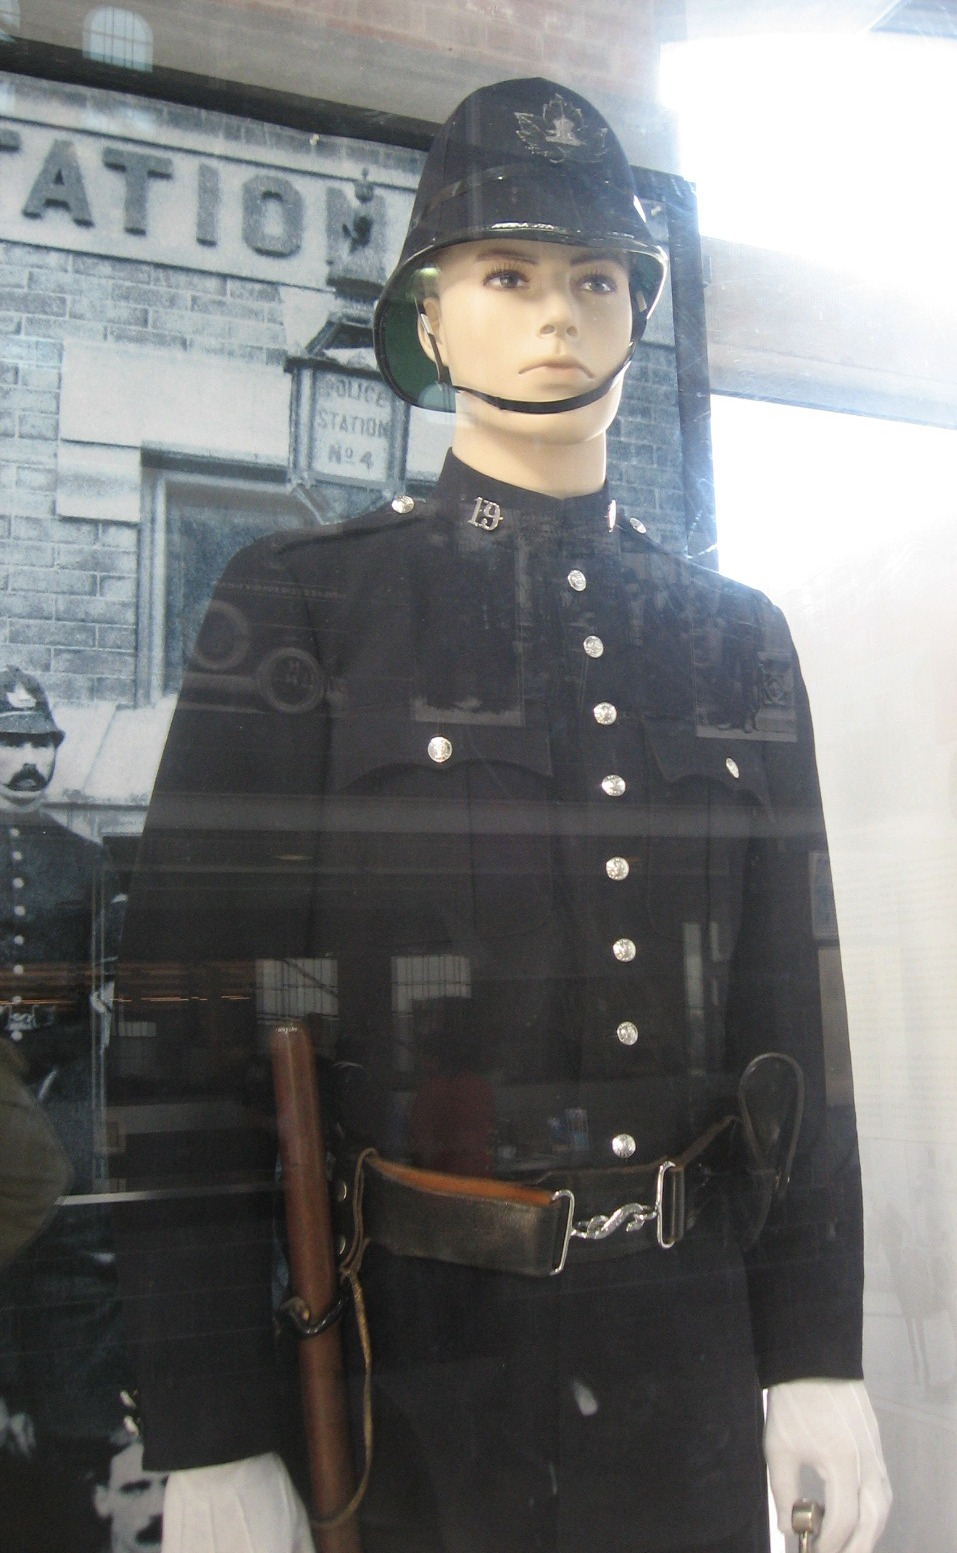 Police Uniform In The Key Of He